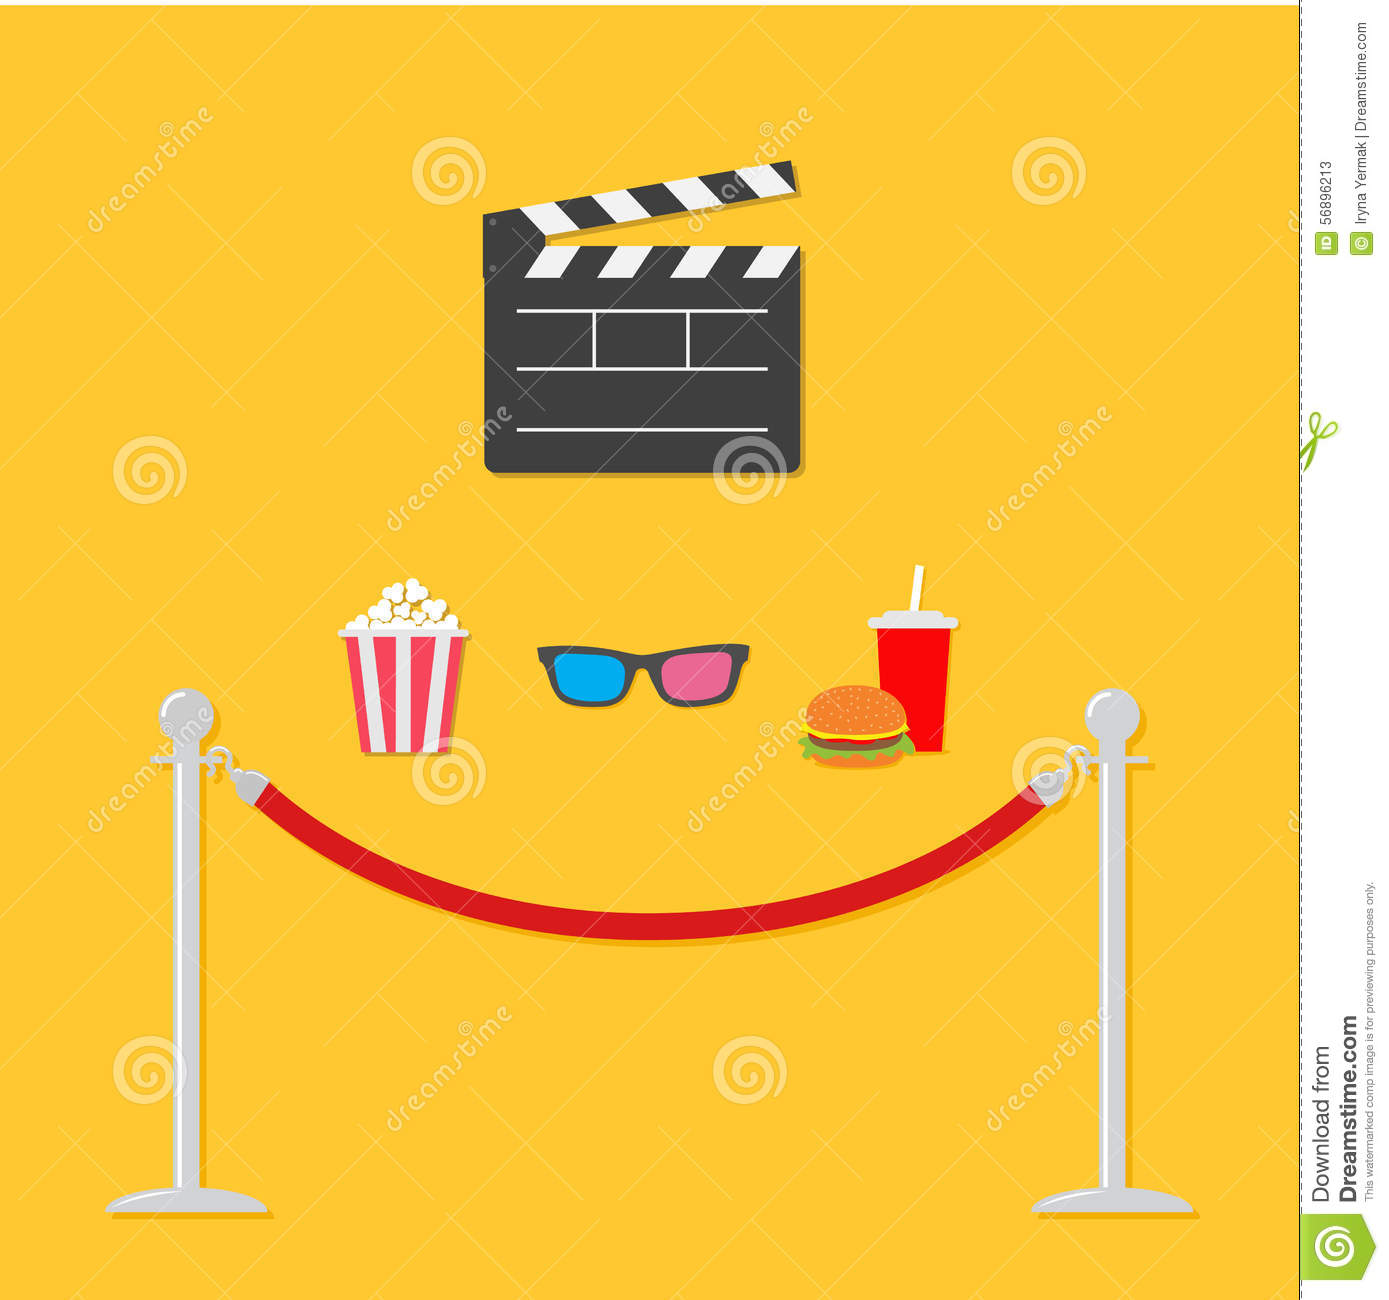 Nice 1099 Template Excel Tiny 1099 Template Word Flat 2014 Monthly Calendar Templates 2015 Template Calendar Young 3d Animator Resume Templates Coloured3d Character Modeler Resume Open Movie Clapper Board And 3D Glasses Template Icon. Flat Design ..